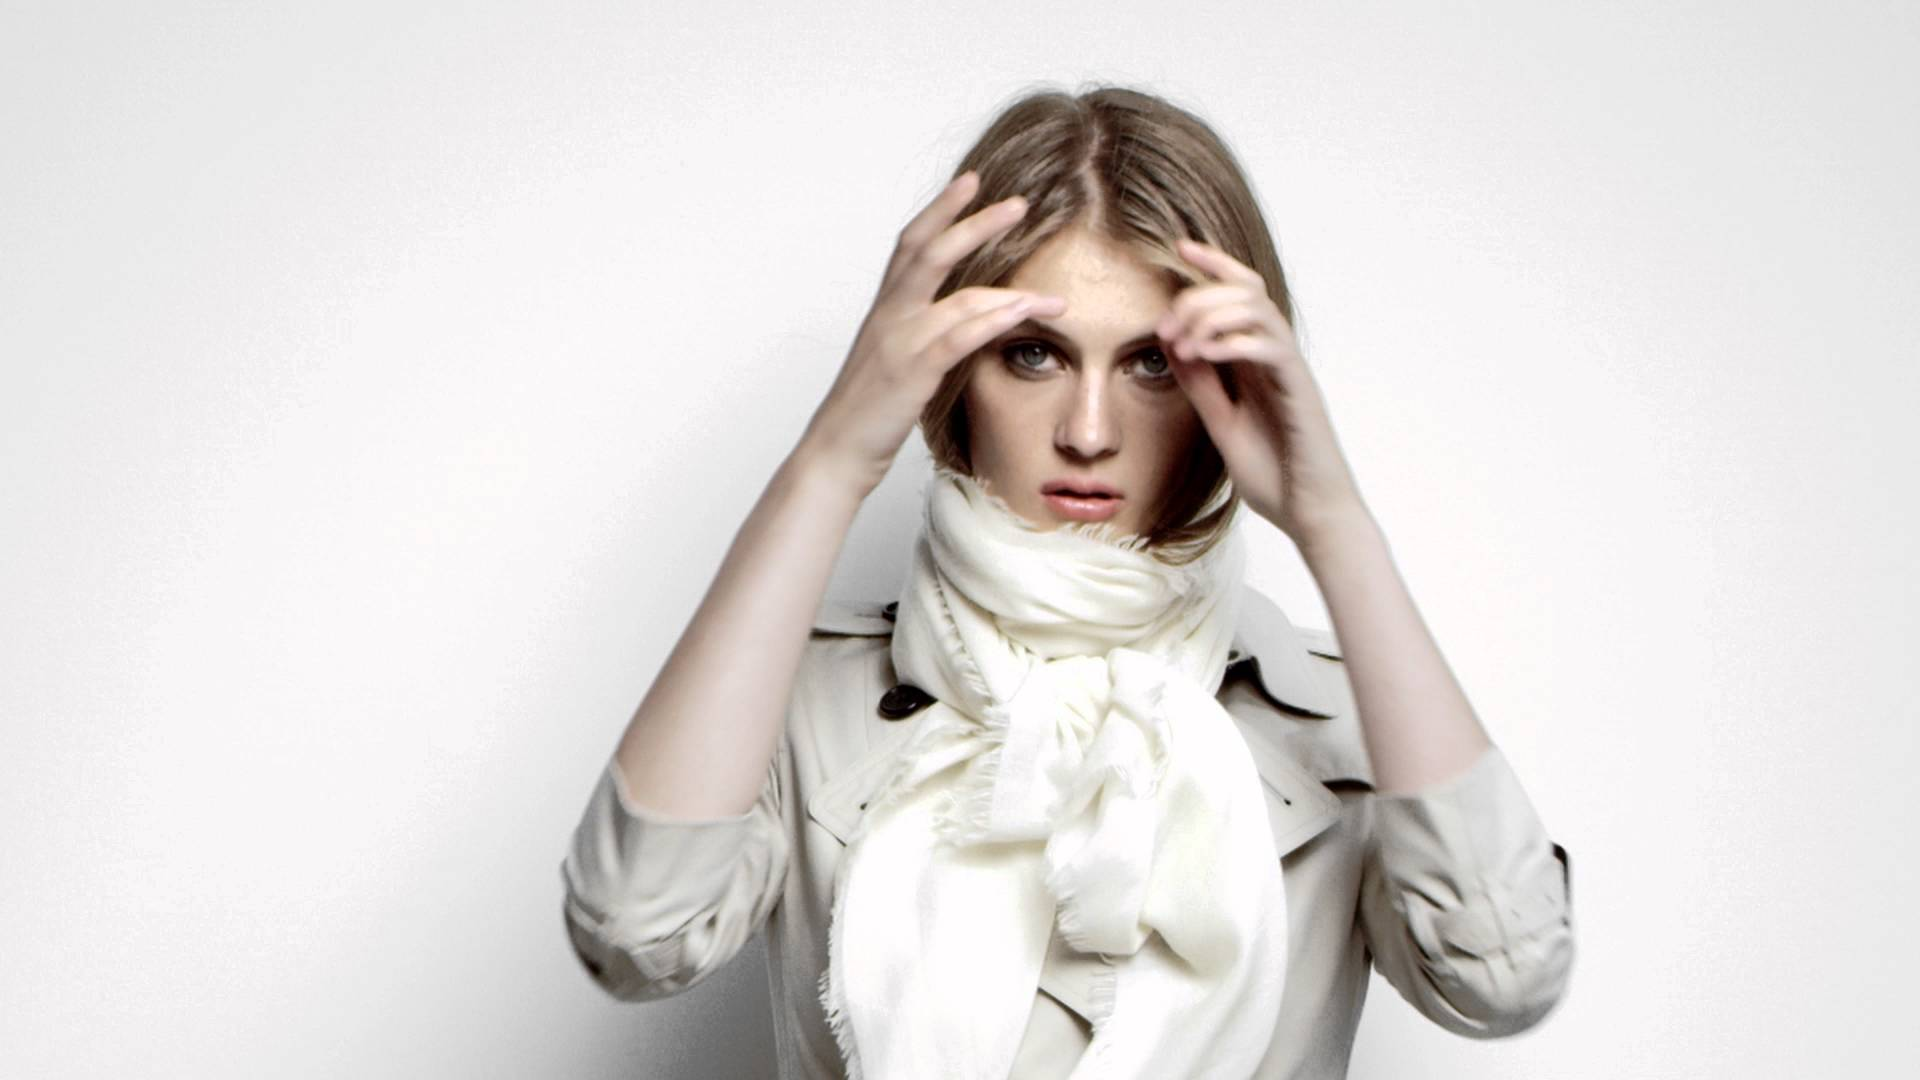 Florence wears her Burberry scarf in The Girl's Cravat style. Follow the tutorial steps to recreate the look: Step 1 – take your scarf from the corners and drape it […]